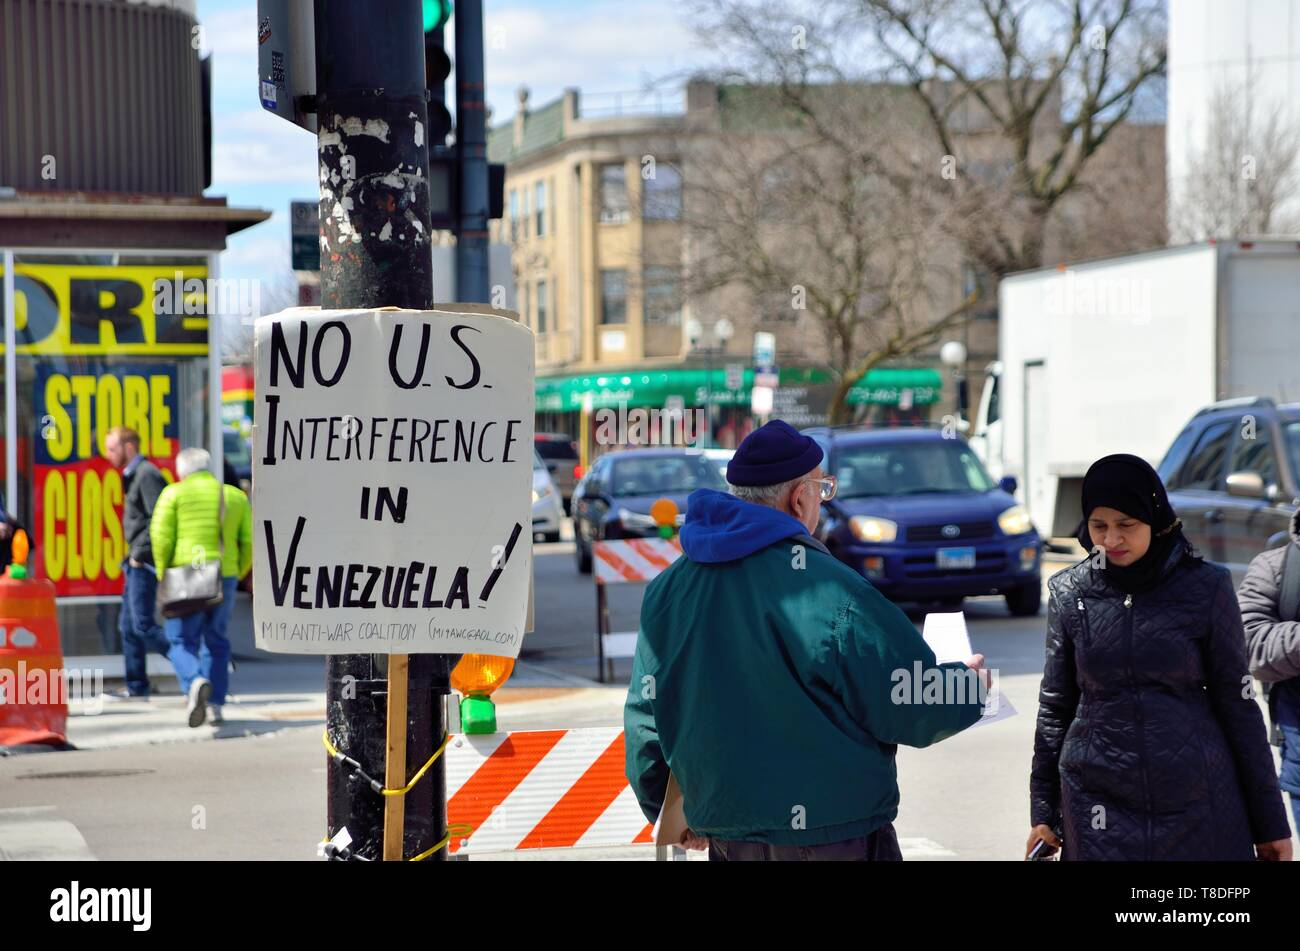 Chicago, Illinois, USA. Protesting in the city's Albany Park neighborhood as people post signs and pass out literature for a cause. - Stock Image